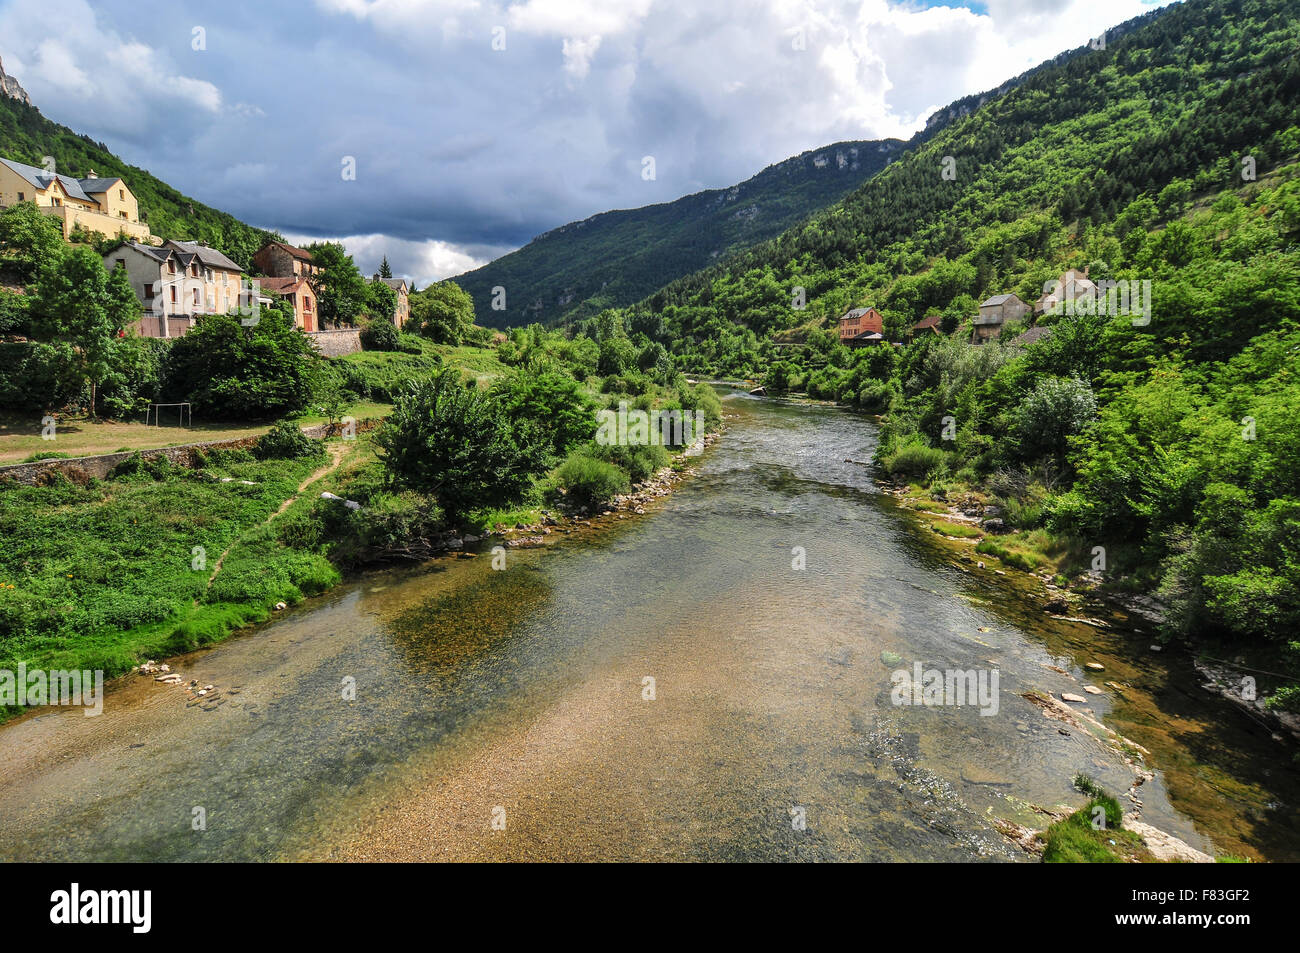 The surrounding rivers Le Jonte and Le Tarne within one of the most beautiful parts of France, Les Cevennes Provence - Stock Image